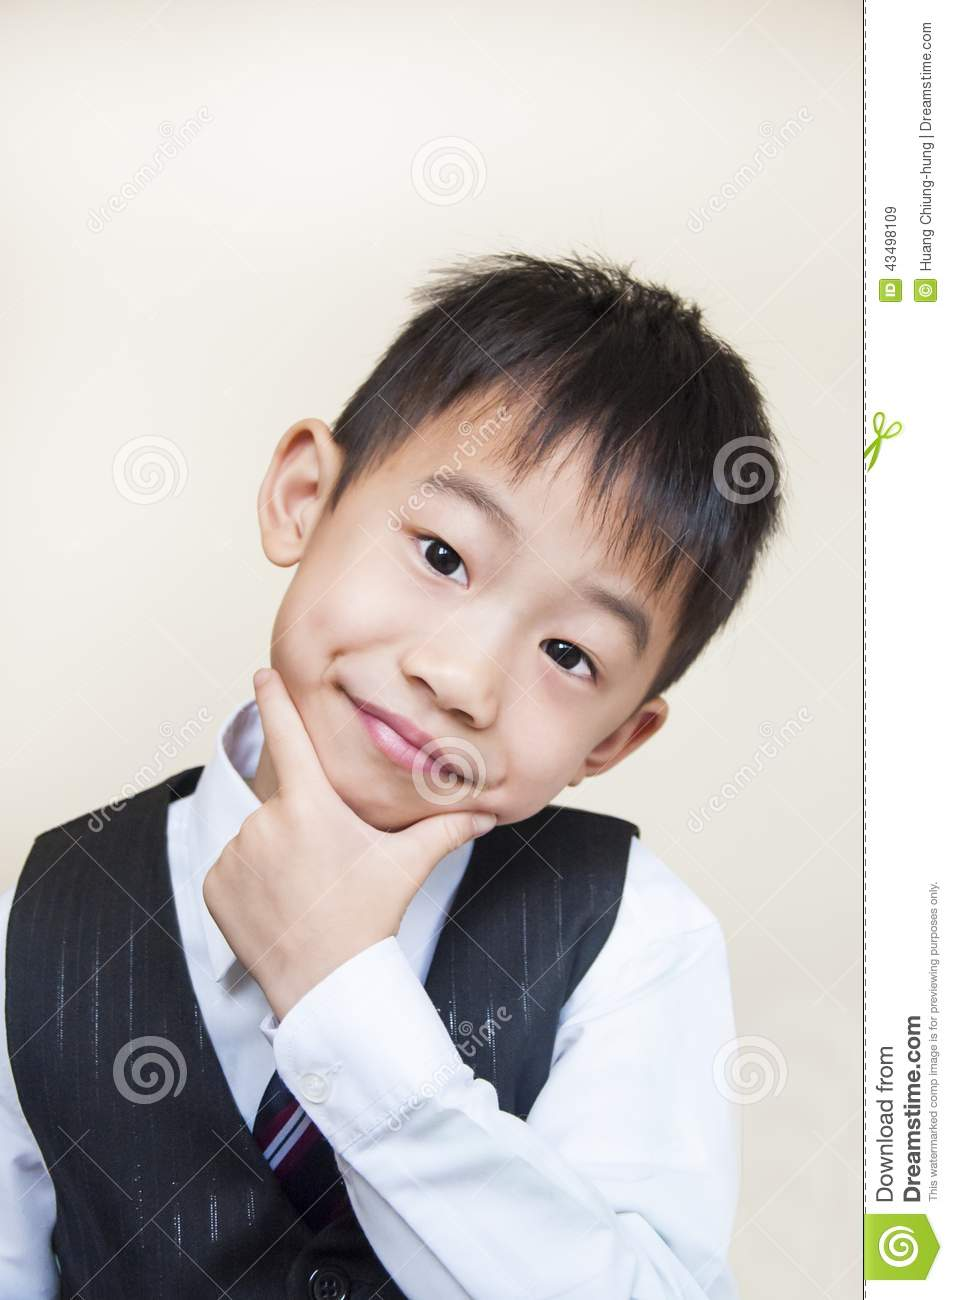 Young boy with hands on chin